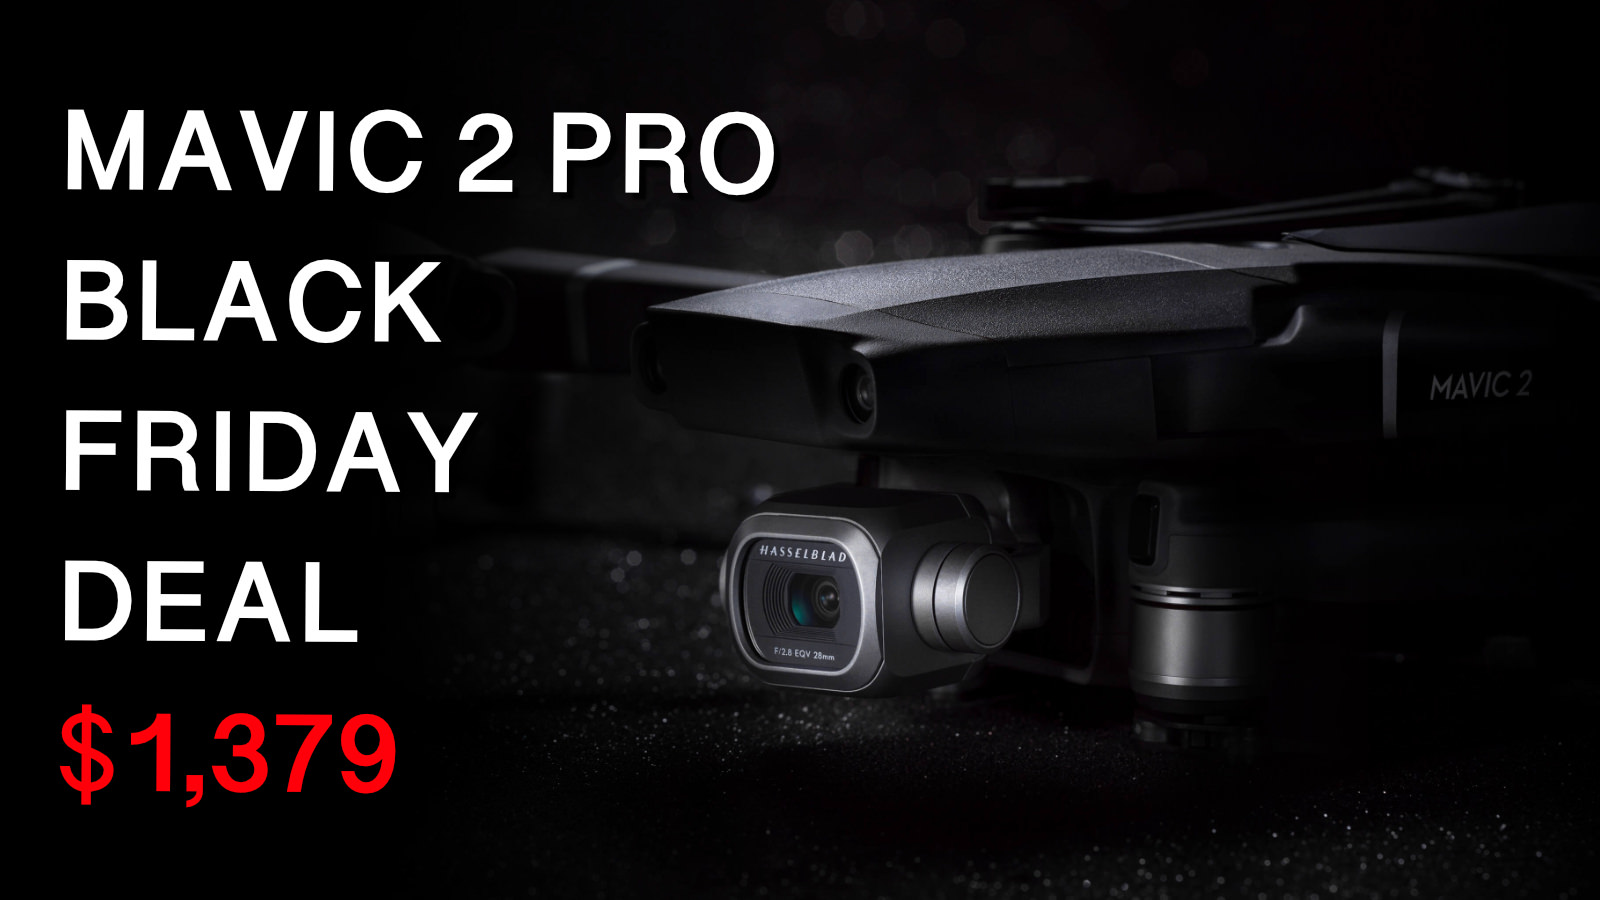 DJI Black Friday Deals and Holiday Promotions 2019 - Mavic 2 Pro